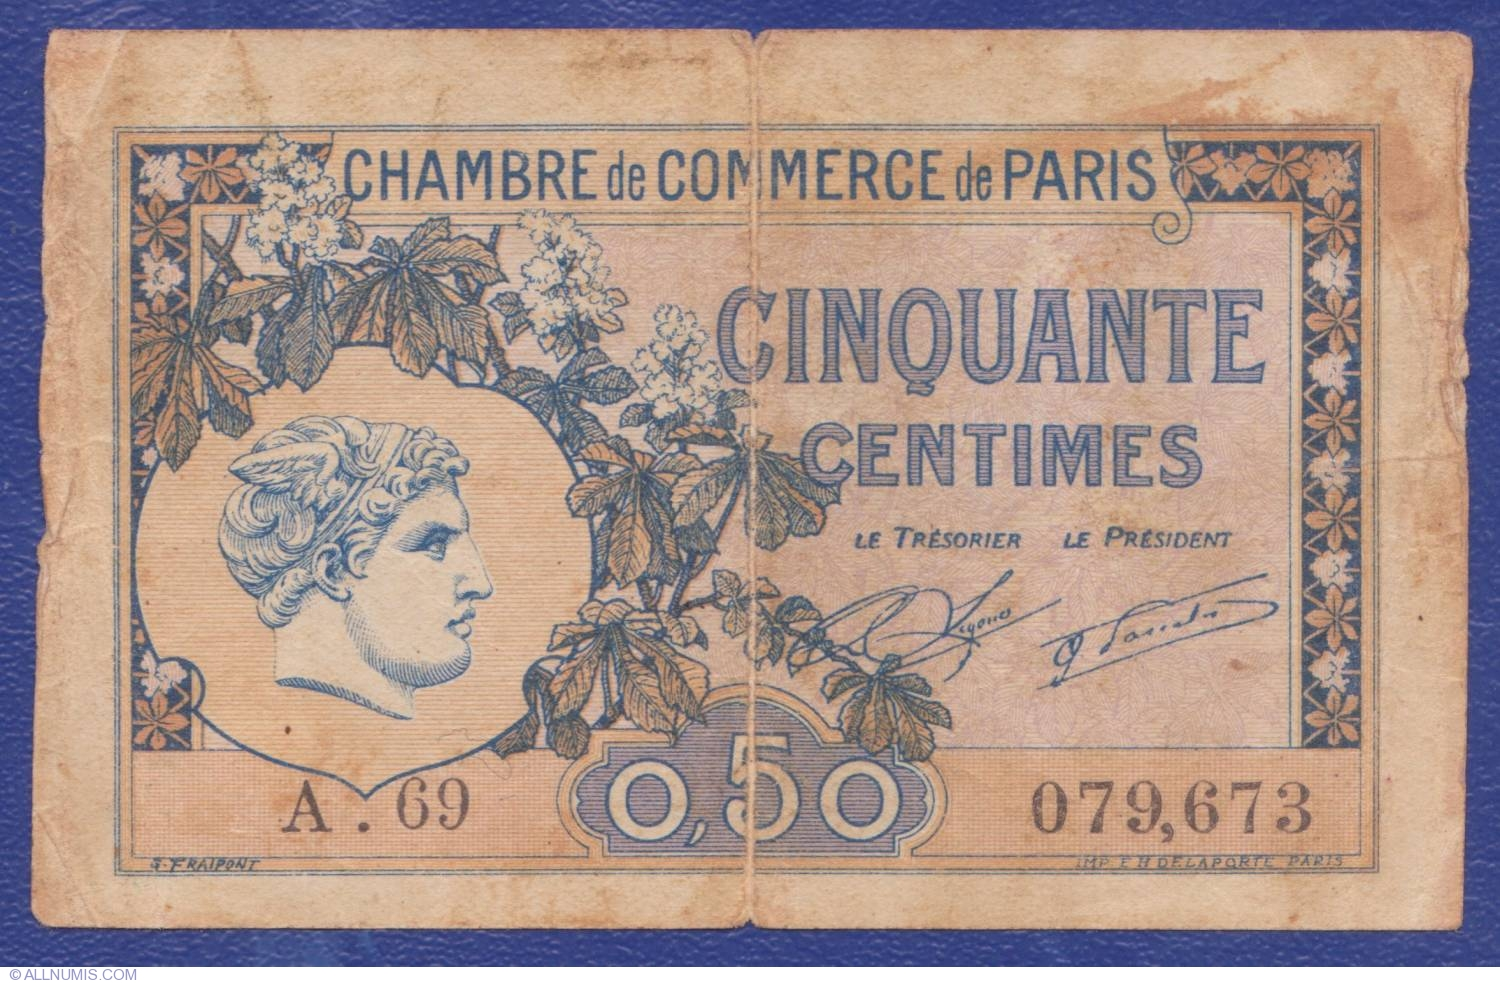 50 centimes 1920 paris chambre de commerce france for Chambre de commerce franco irlandaise